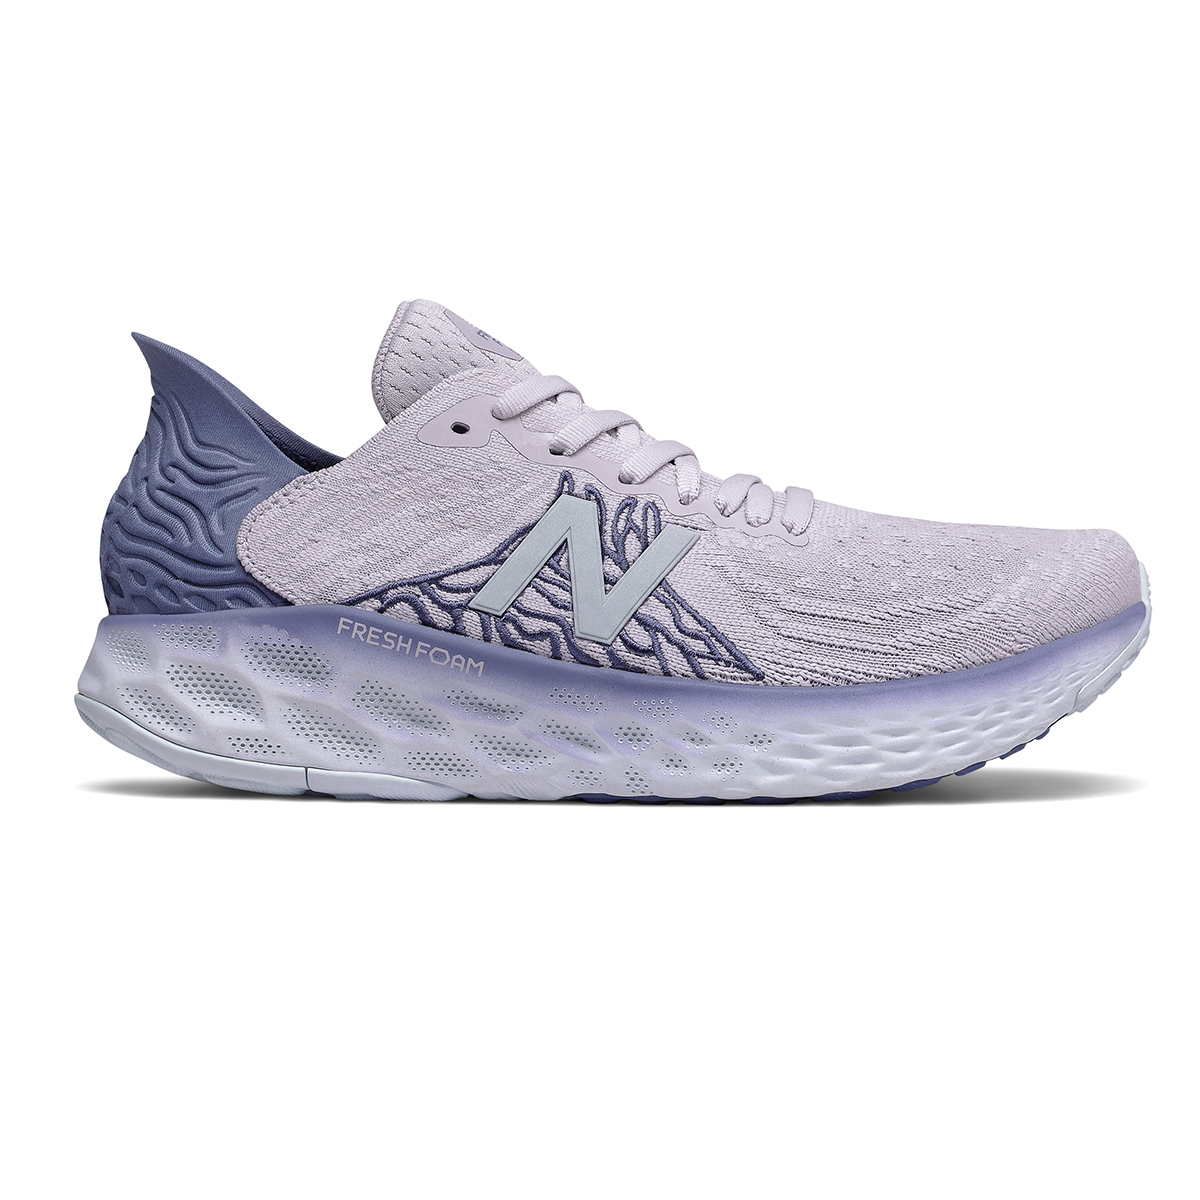 Women's New Balance Fresh Foam 1080v10 Running Shoe - Color: Thistle - Size: 5.5 - Width: Narrow, Thistle, large, image 1